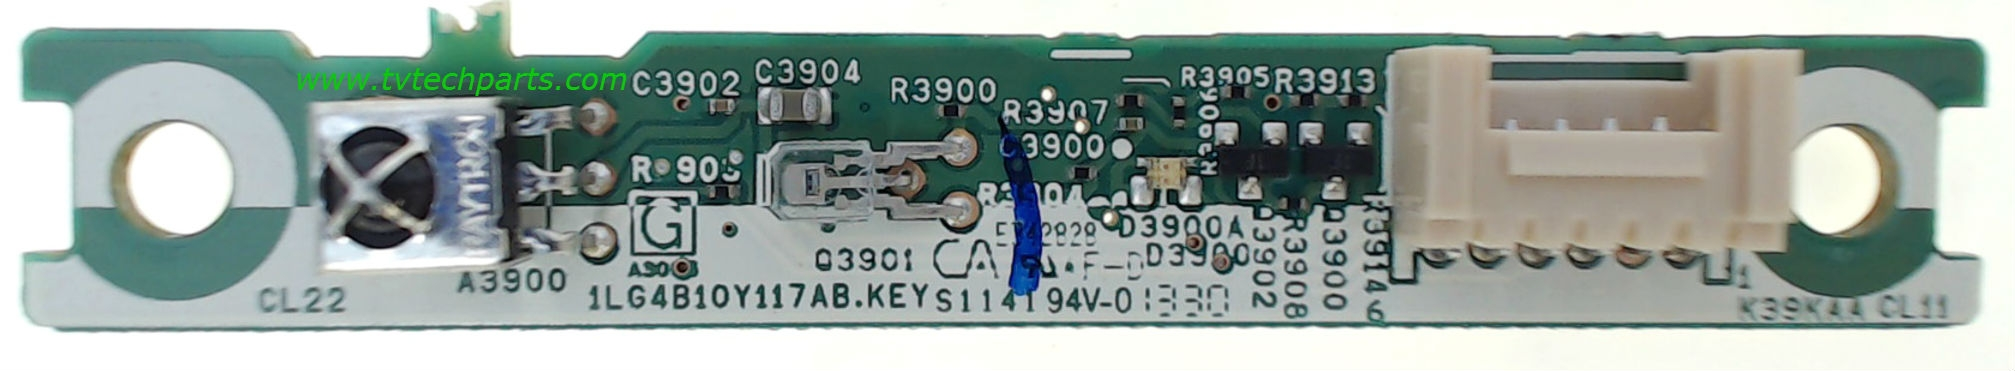 Sanyo Television Model DP42D23 Remote Control Receiver Board Part Number 1LG4B10Y117AB.KEY